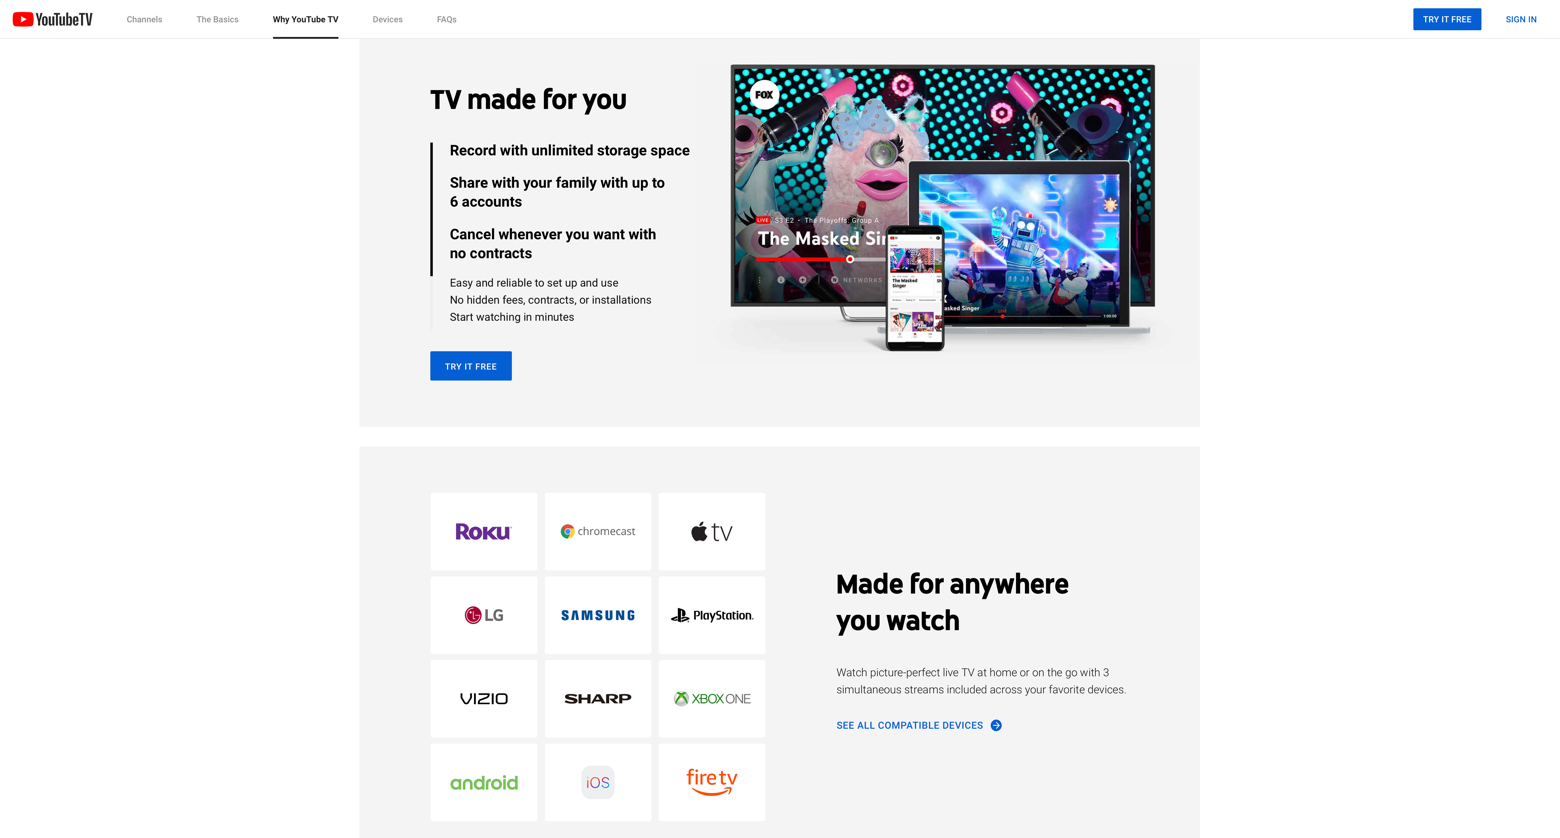 YouTube TV website